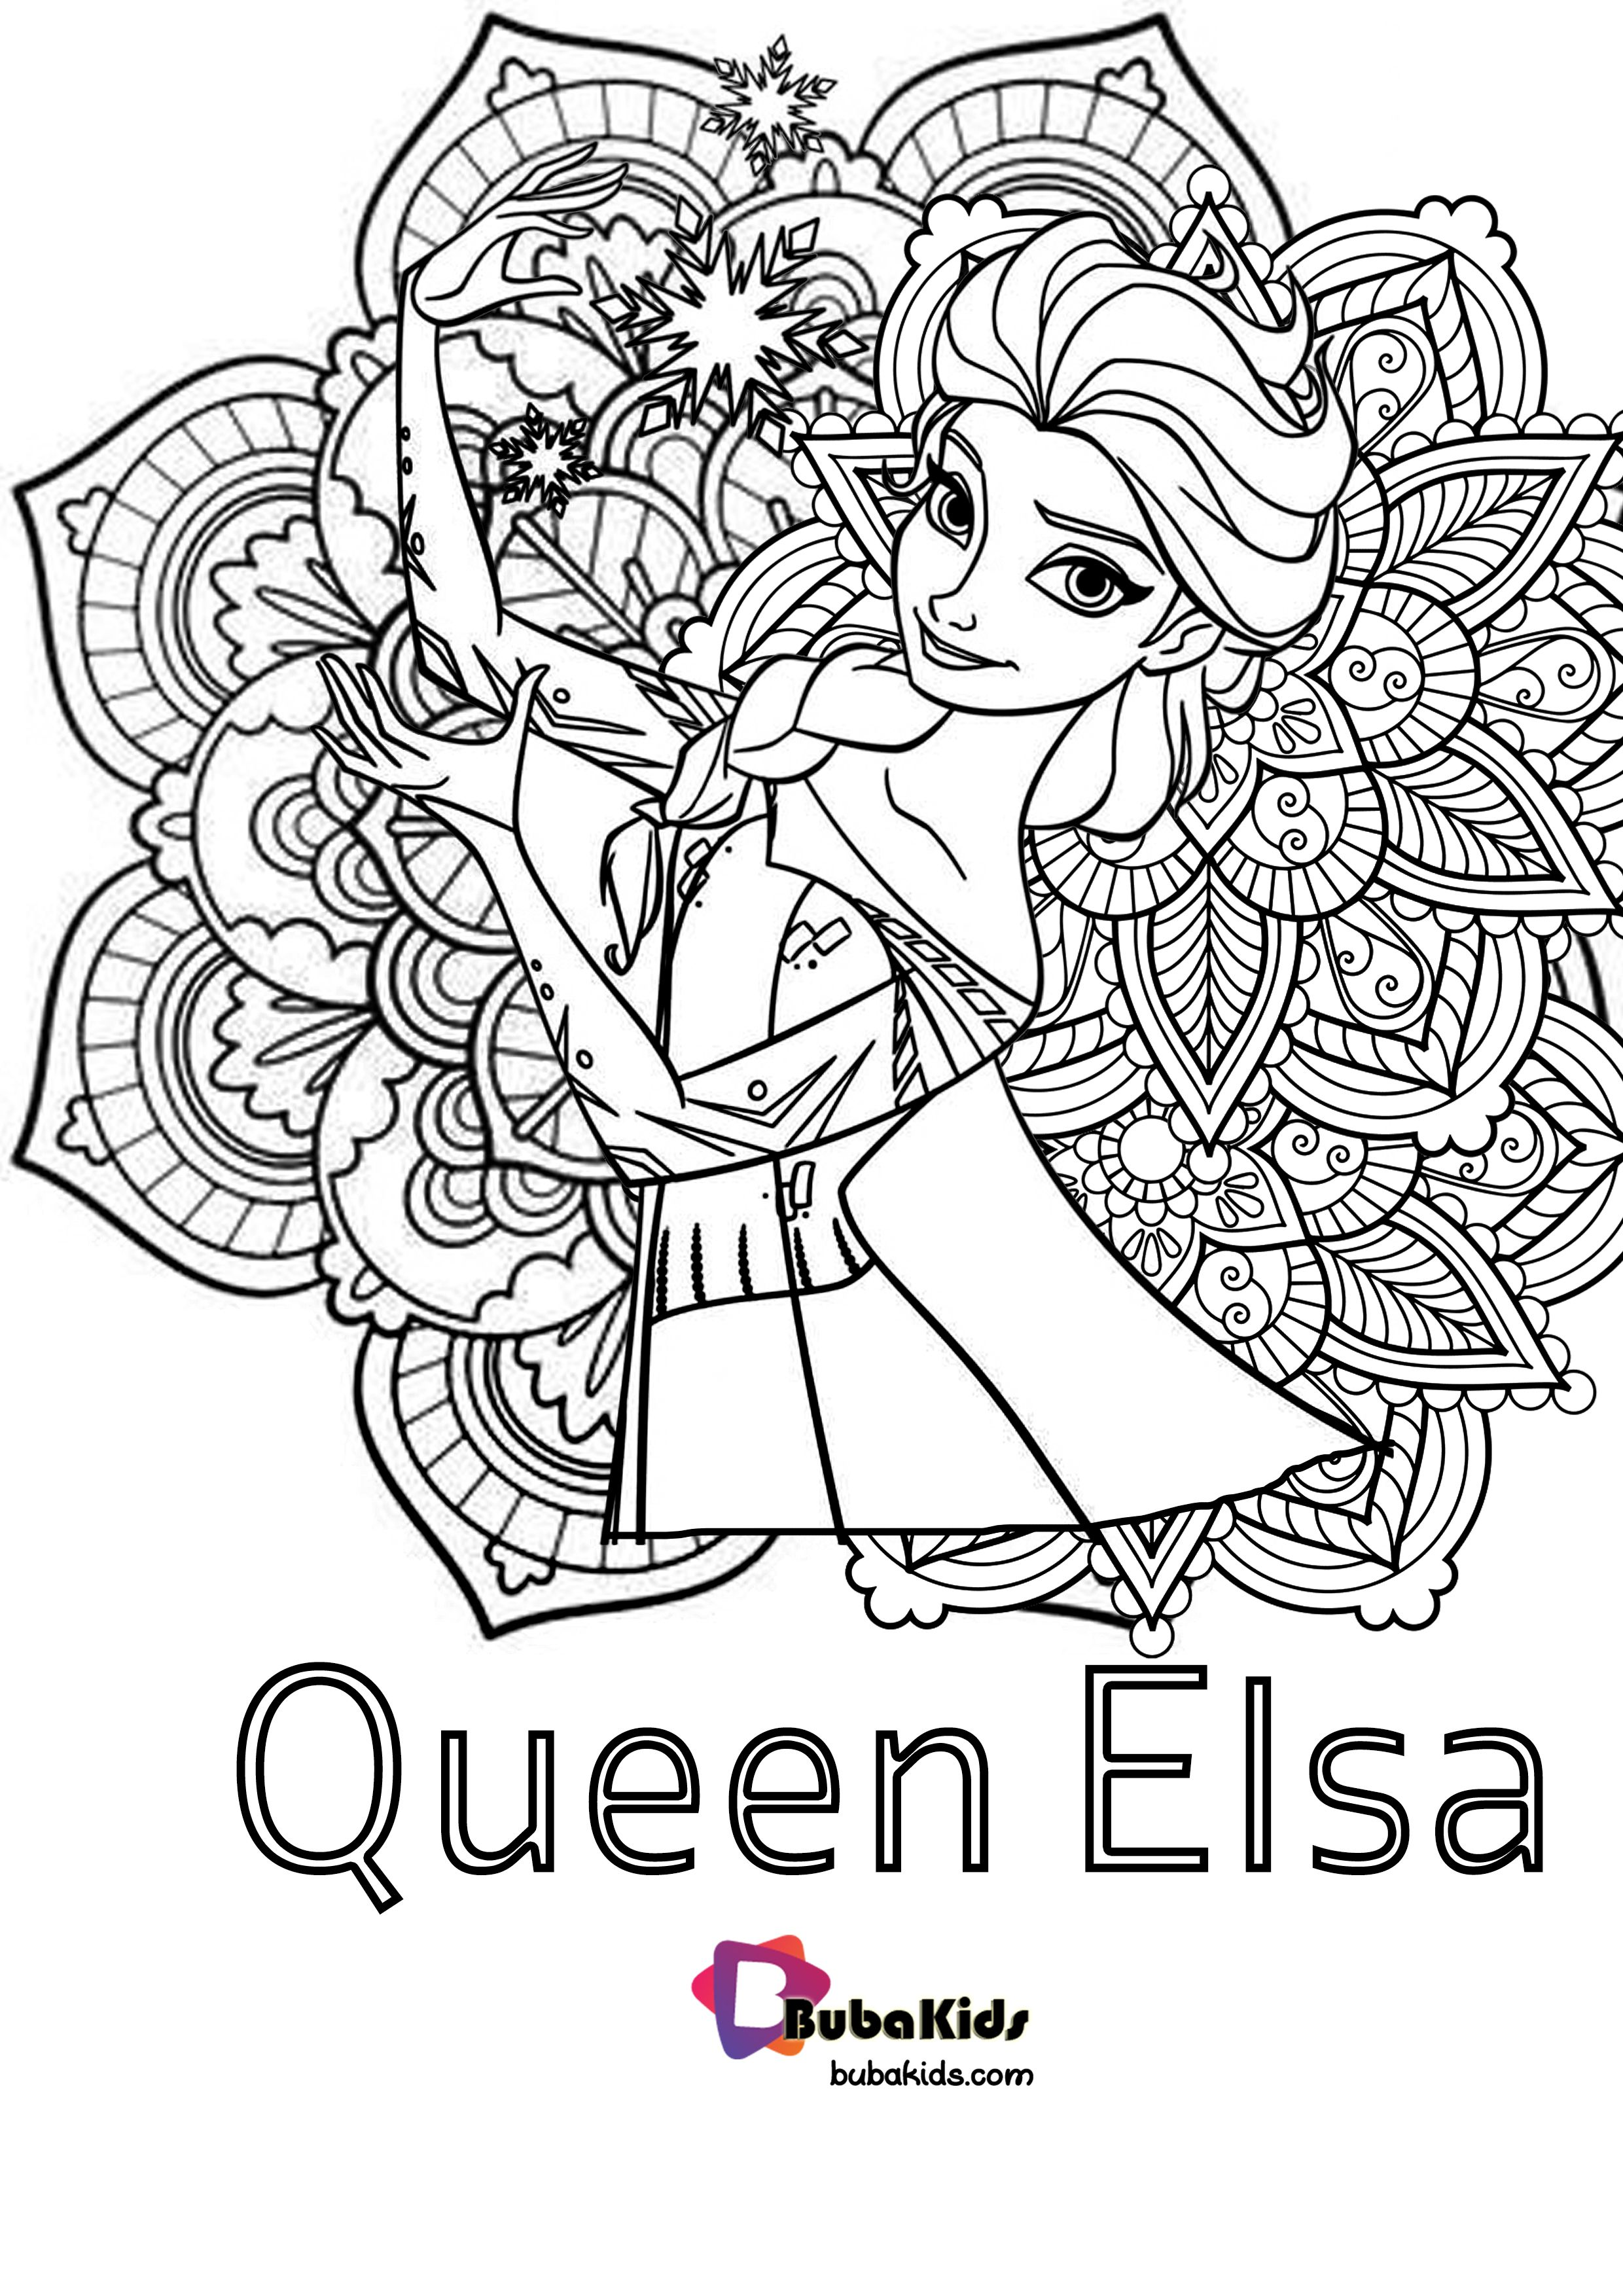 Queen Elsa Floral Coloring Pages Free Printable Coloringpages Elsa Floral Mandala Queen Colori Elsa Coloring Pages Cartoon Coloring Pages Coloring Pages